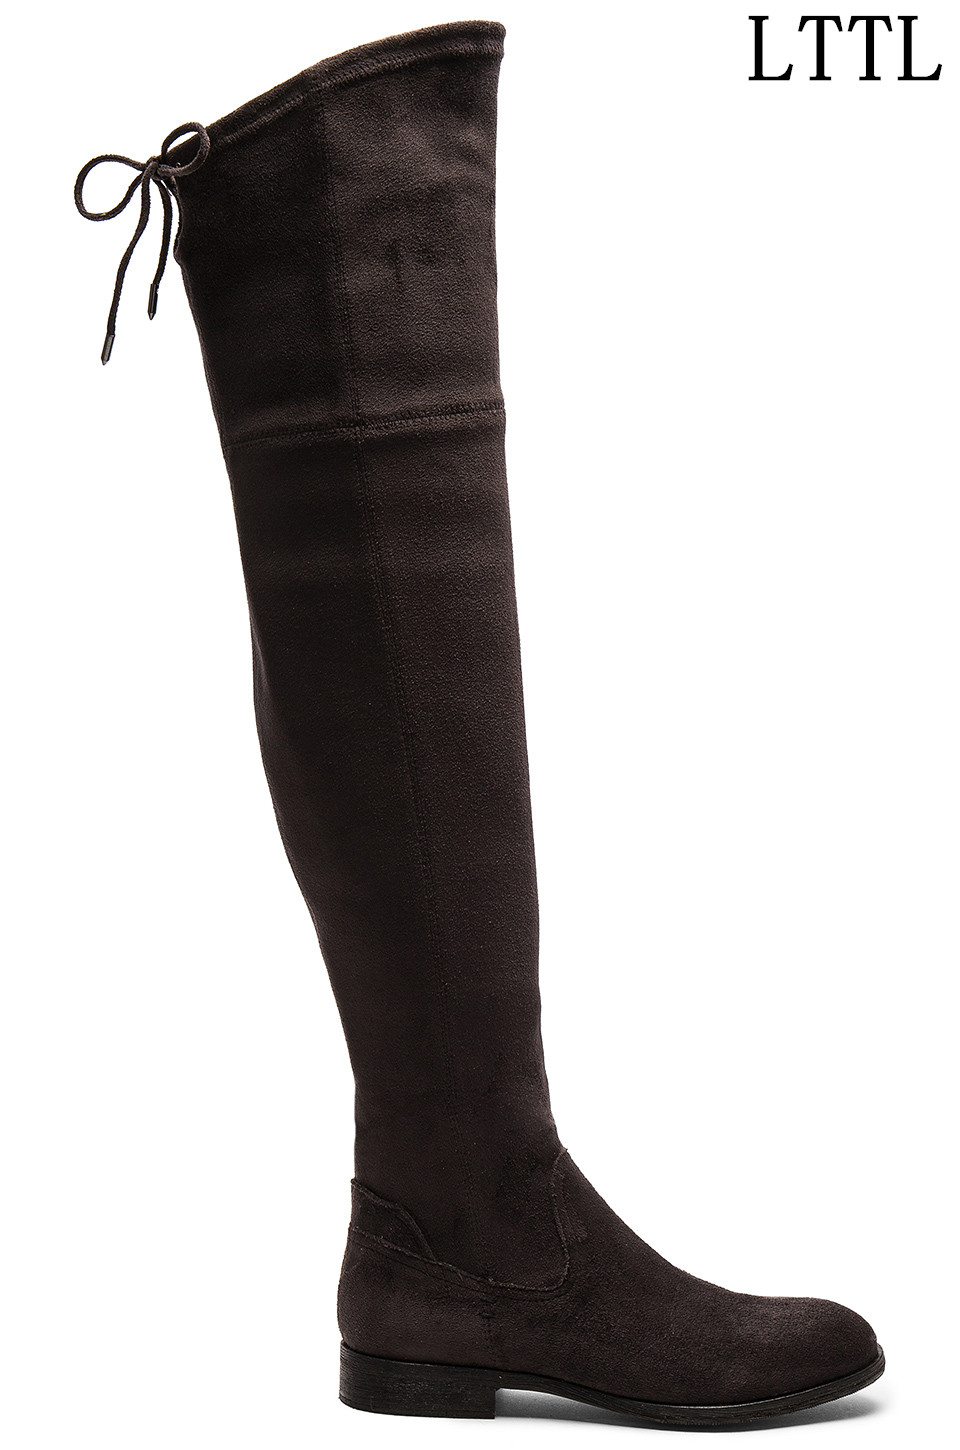 Factory Price Women Sexy Thigh High Boots Suede Exquisite Back Lace-up Long Boots Fashion Skinny Winter Low Heels Boots